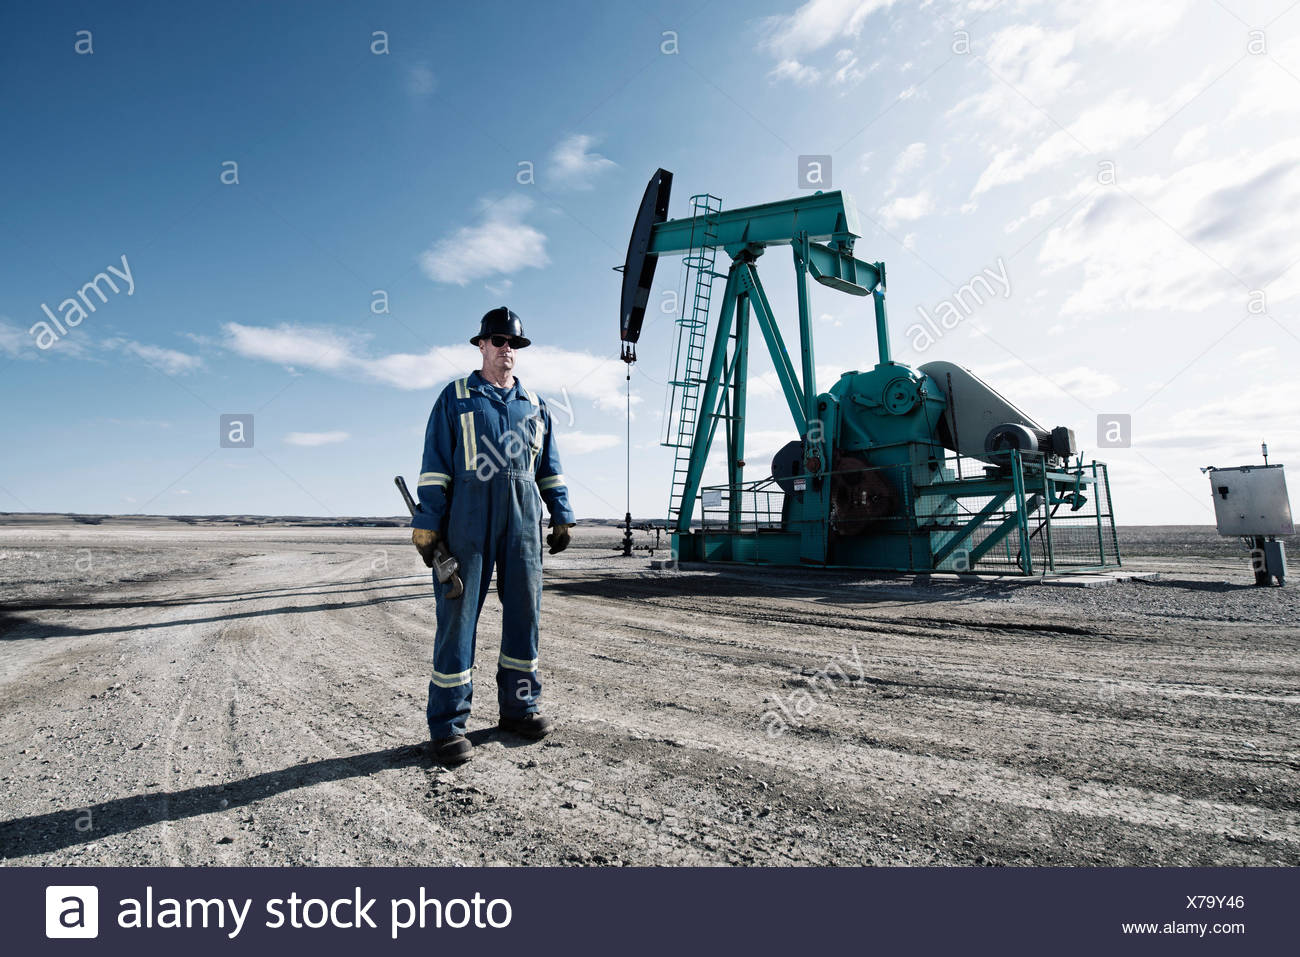 A man in overalls and a hard hat with a large wrench working at an oil extraction site. - Stock Image